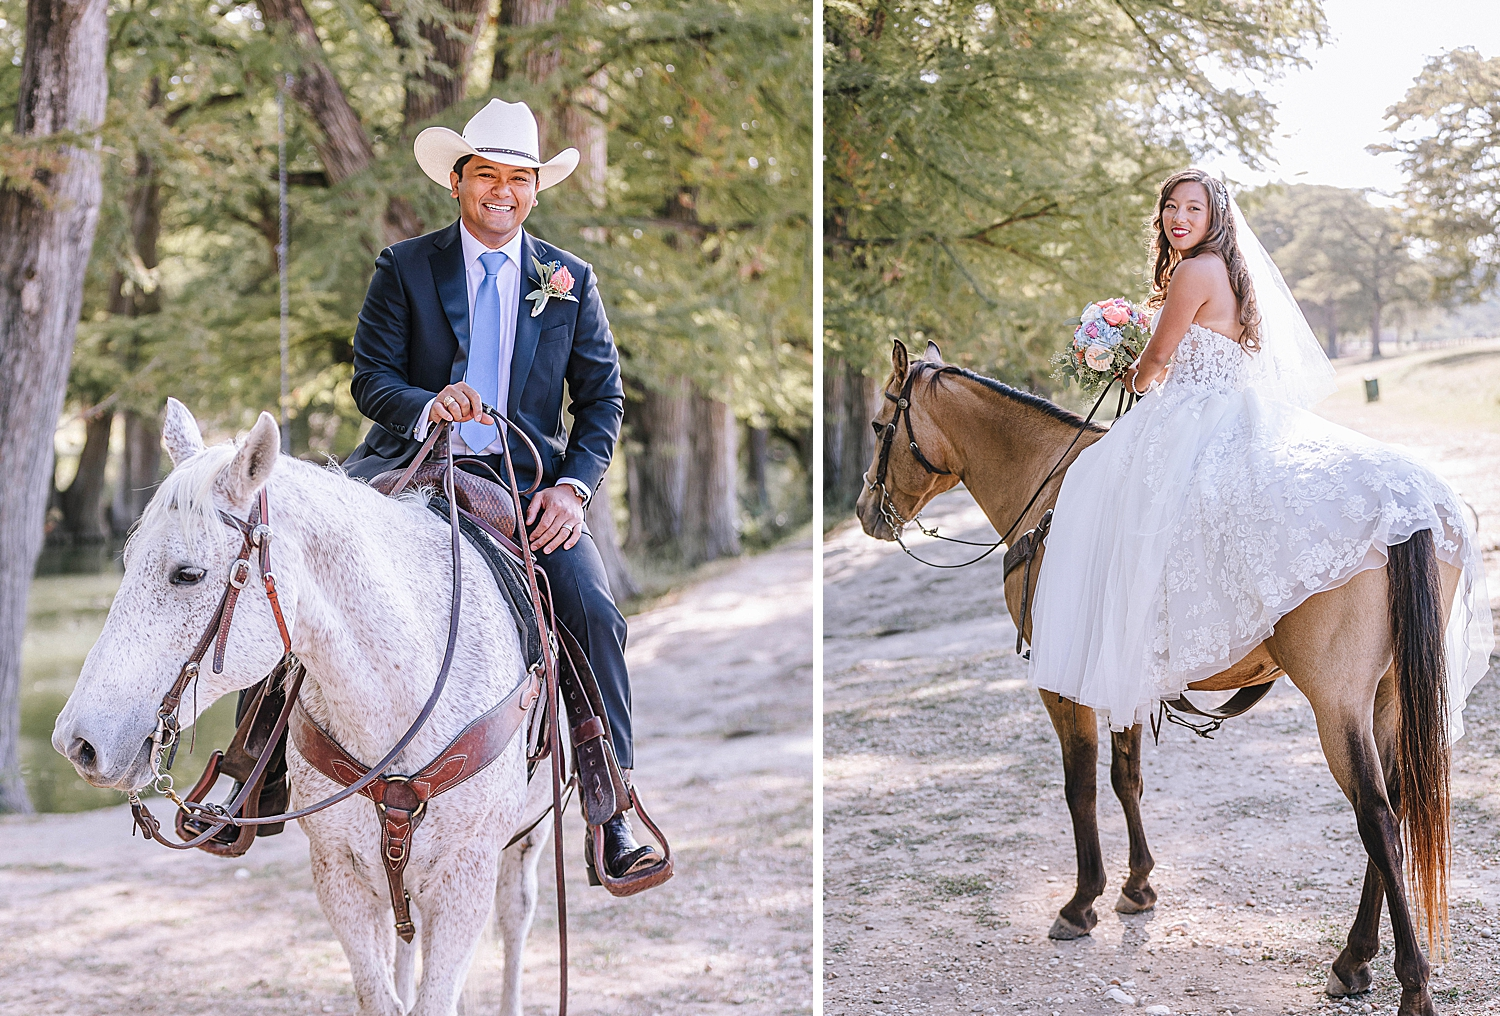 Bandera-Texas-Wedding-Photographer-Bride-Groom-on-Horses-Carly-Barton-Photography_0027.jpg